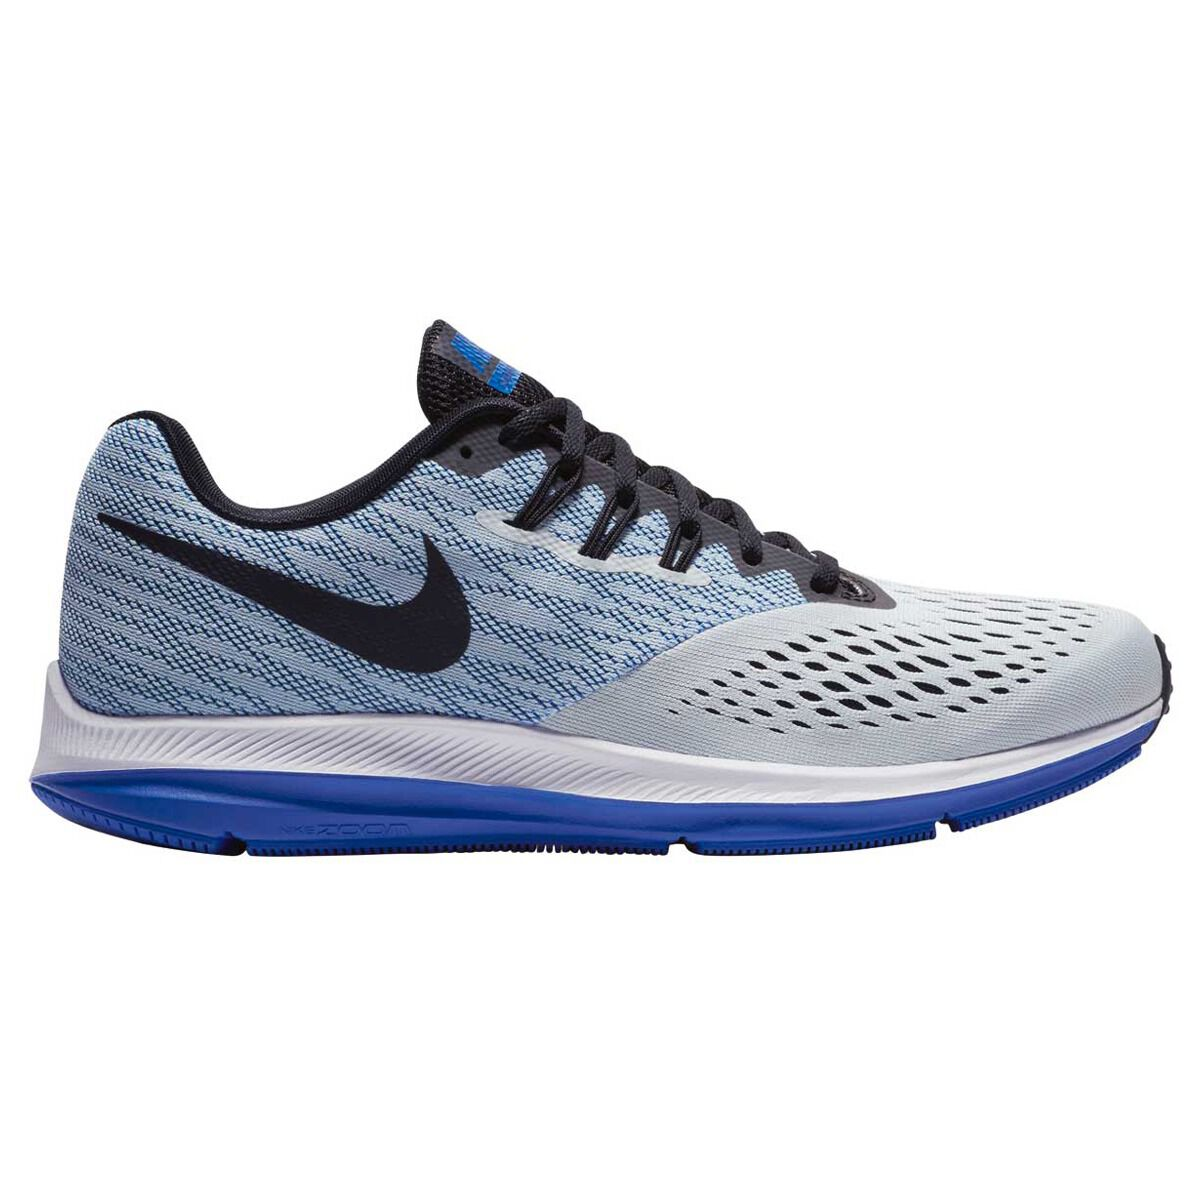 Nike Air Zoom Winflo 4 Mens Running Shoes